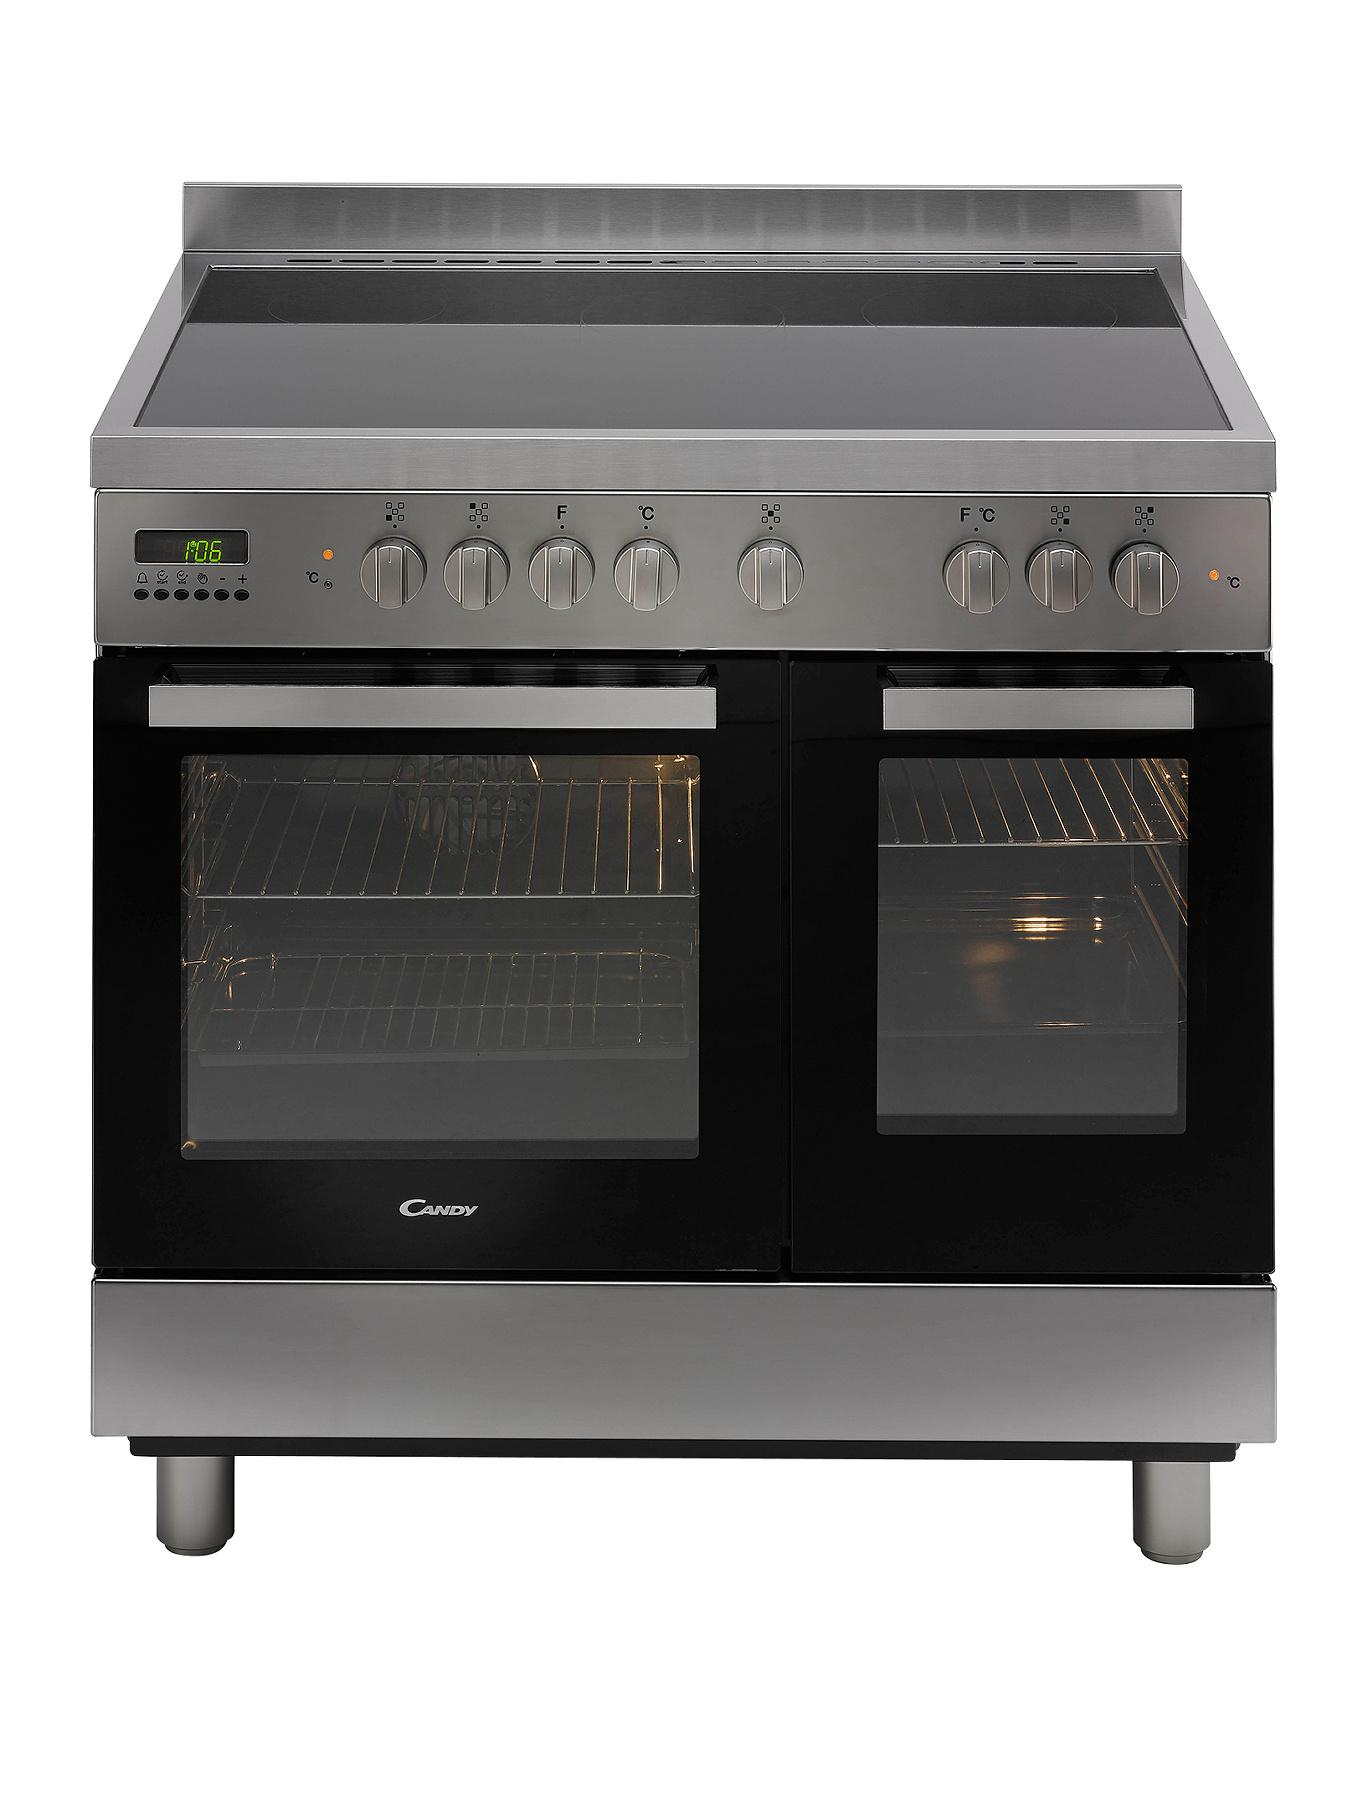 Best Range Cookers For 2018 Reviewed Appliance Reviewer